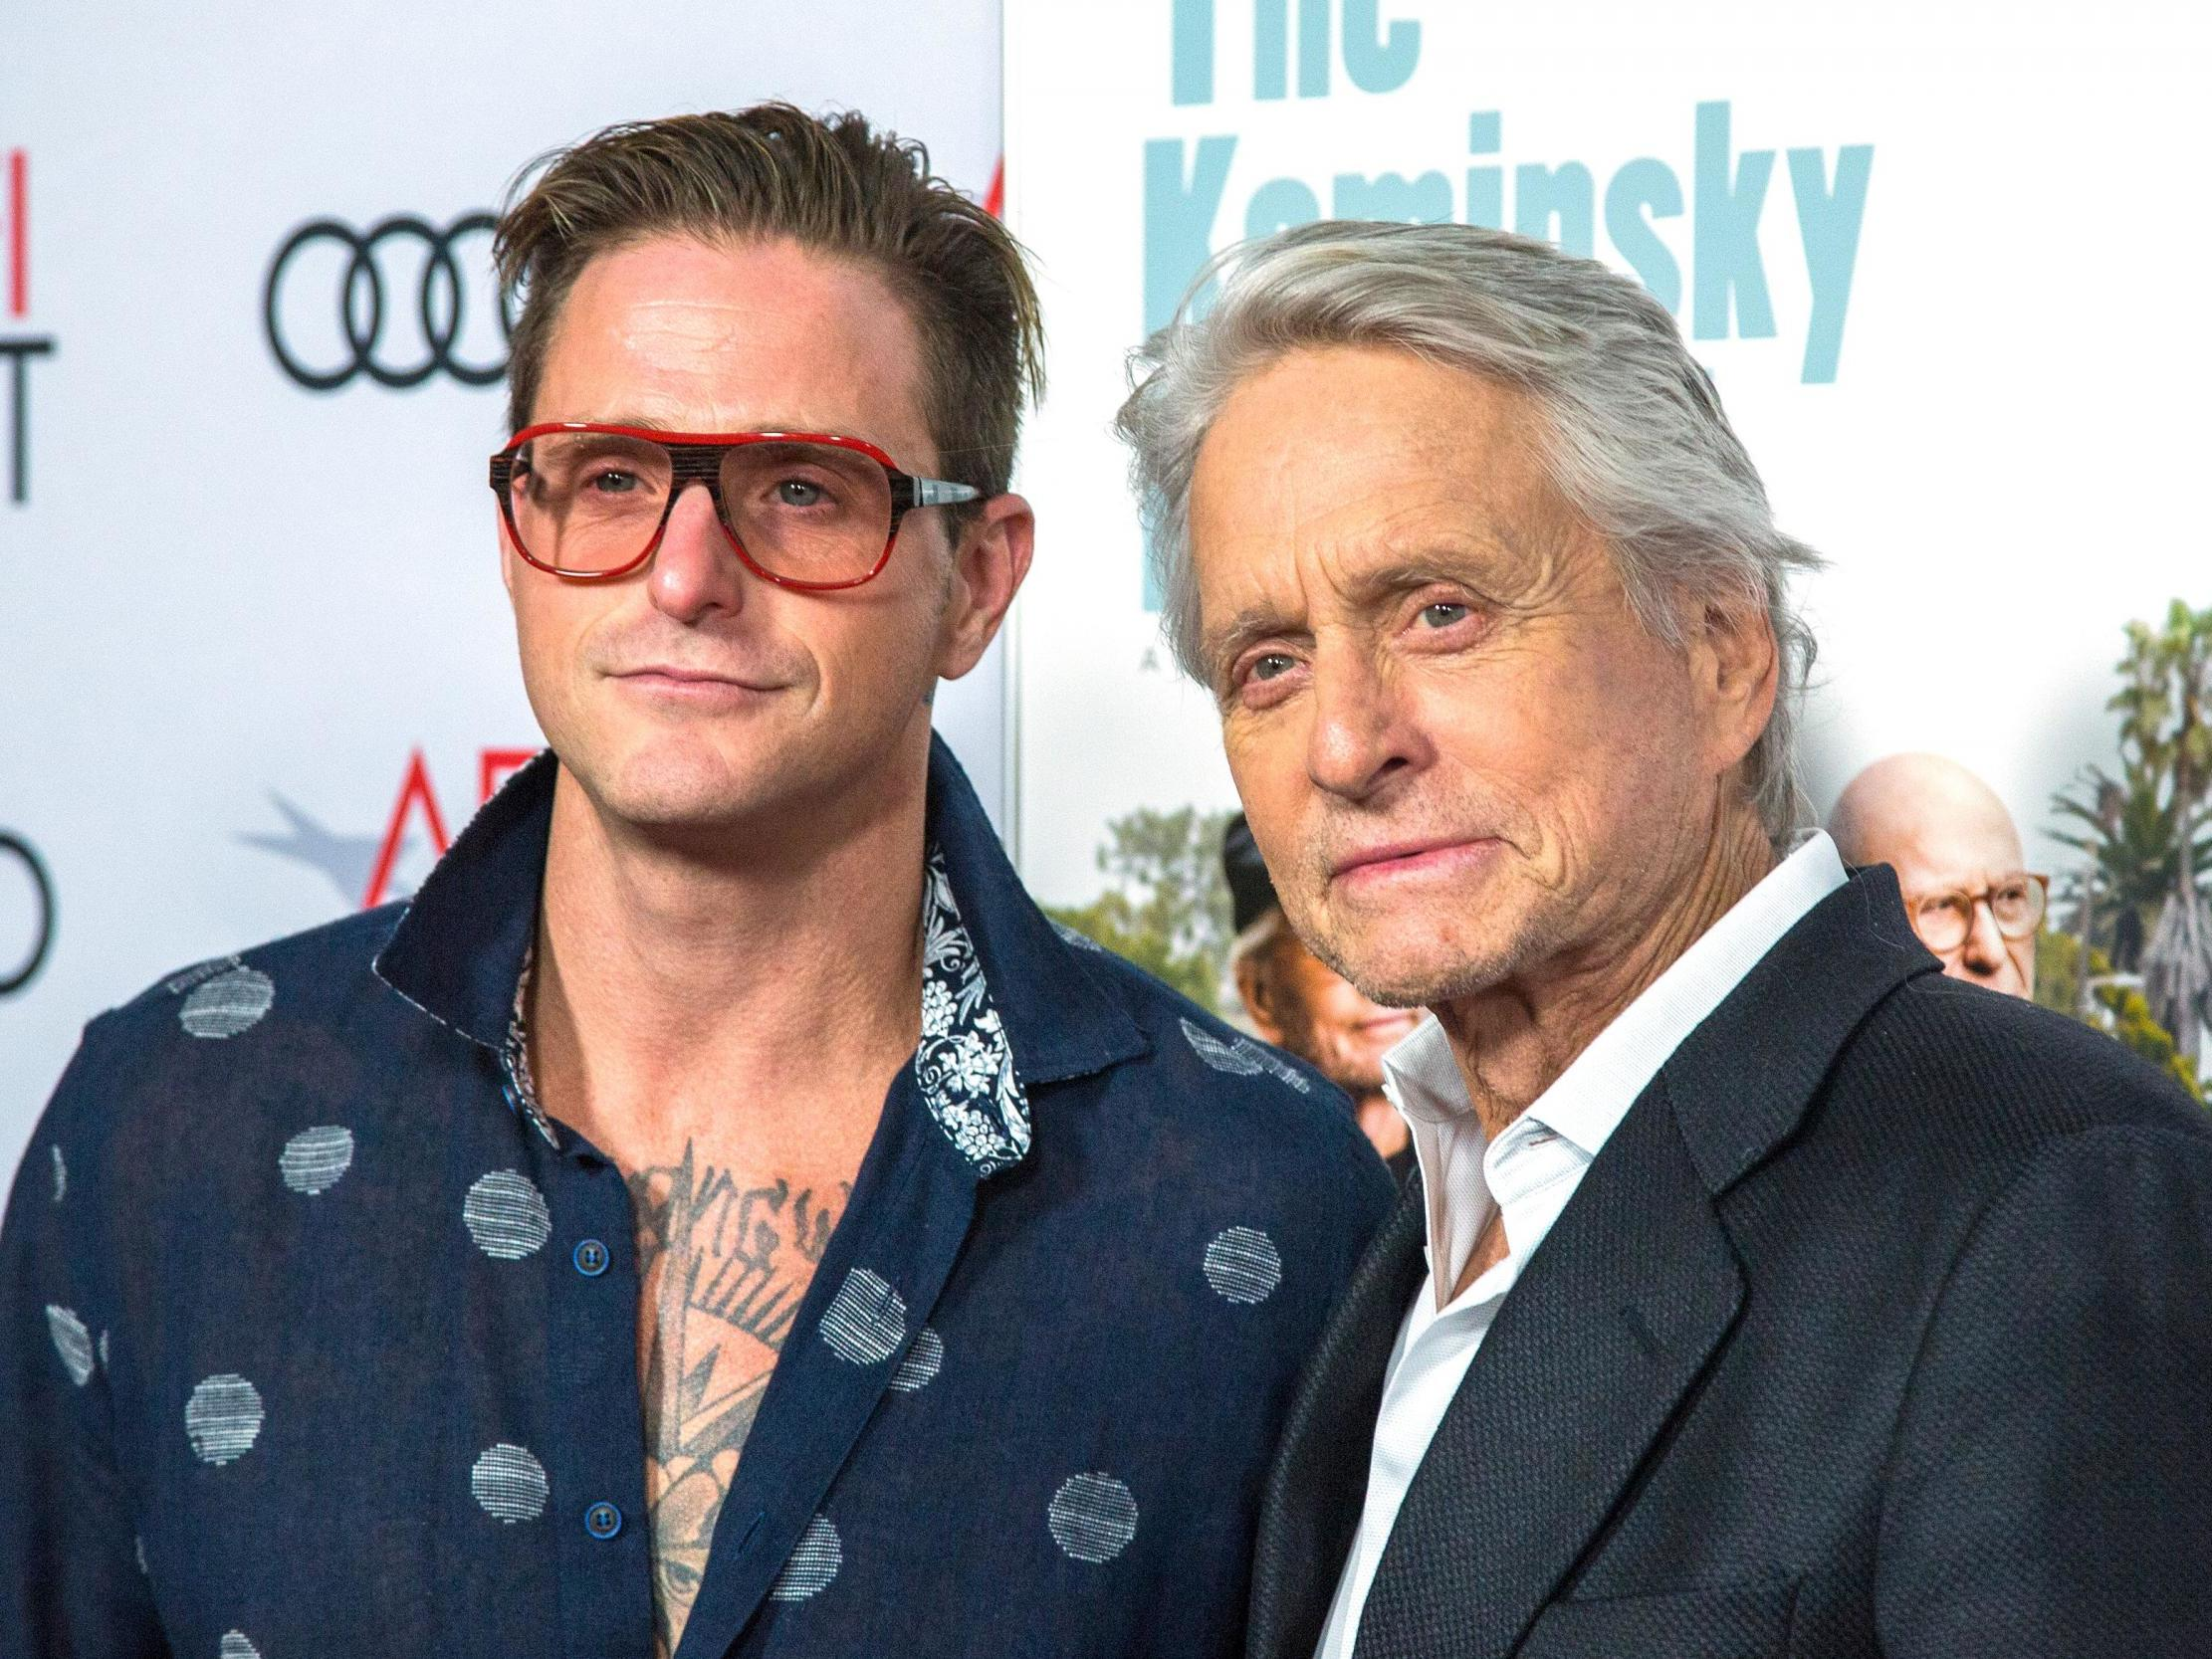 Michael Douglas would ask son Cameron to hand out drugs at parties 'as a really young kid', memoir claims